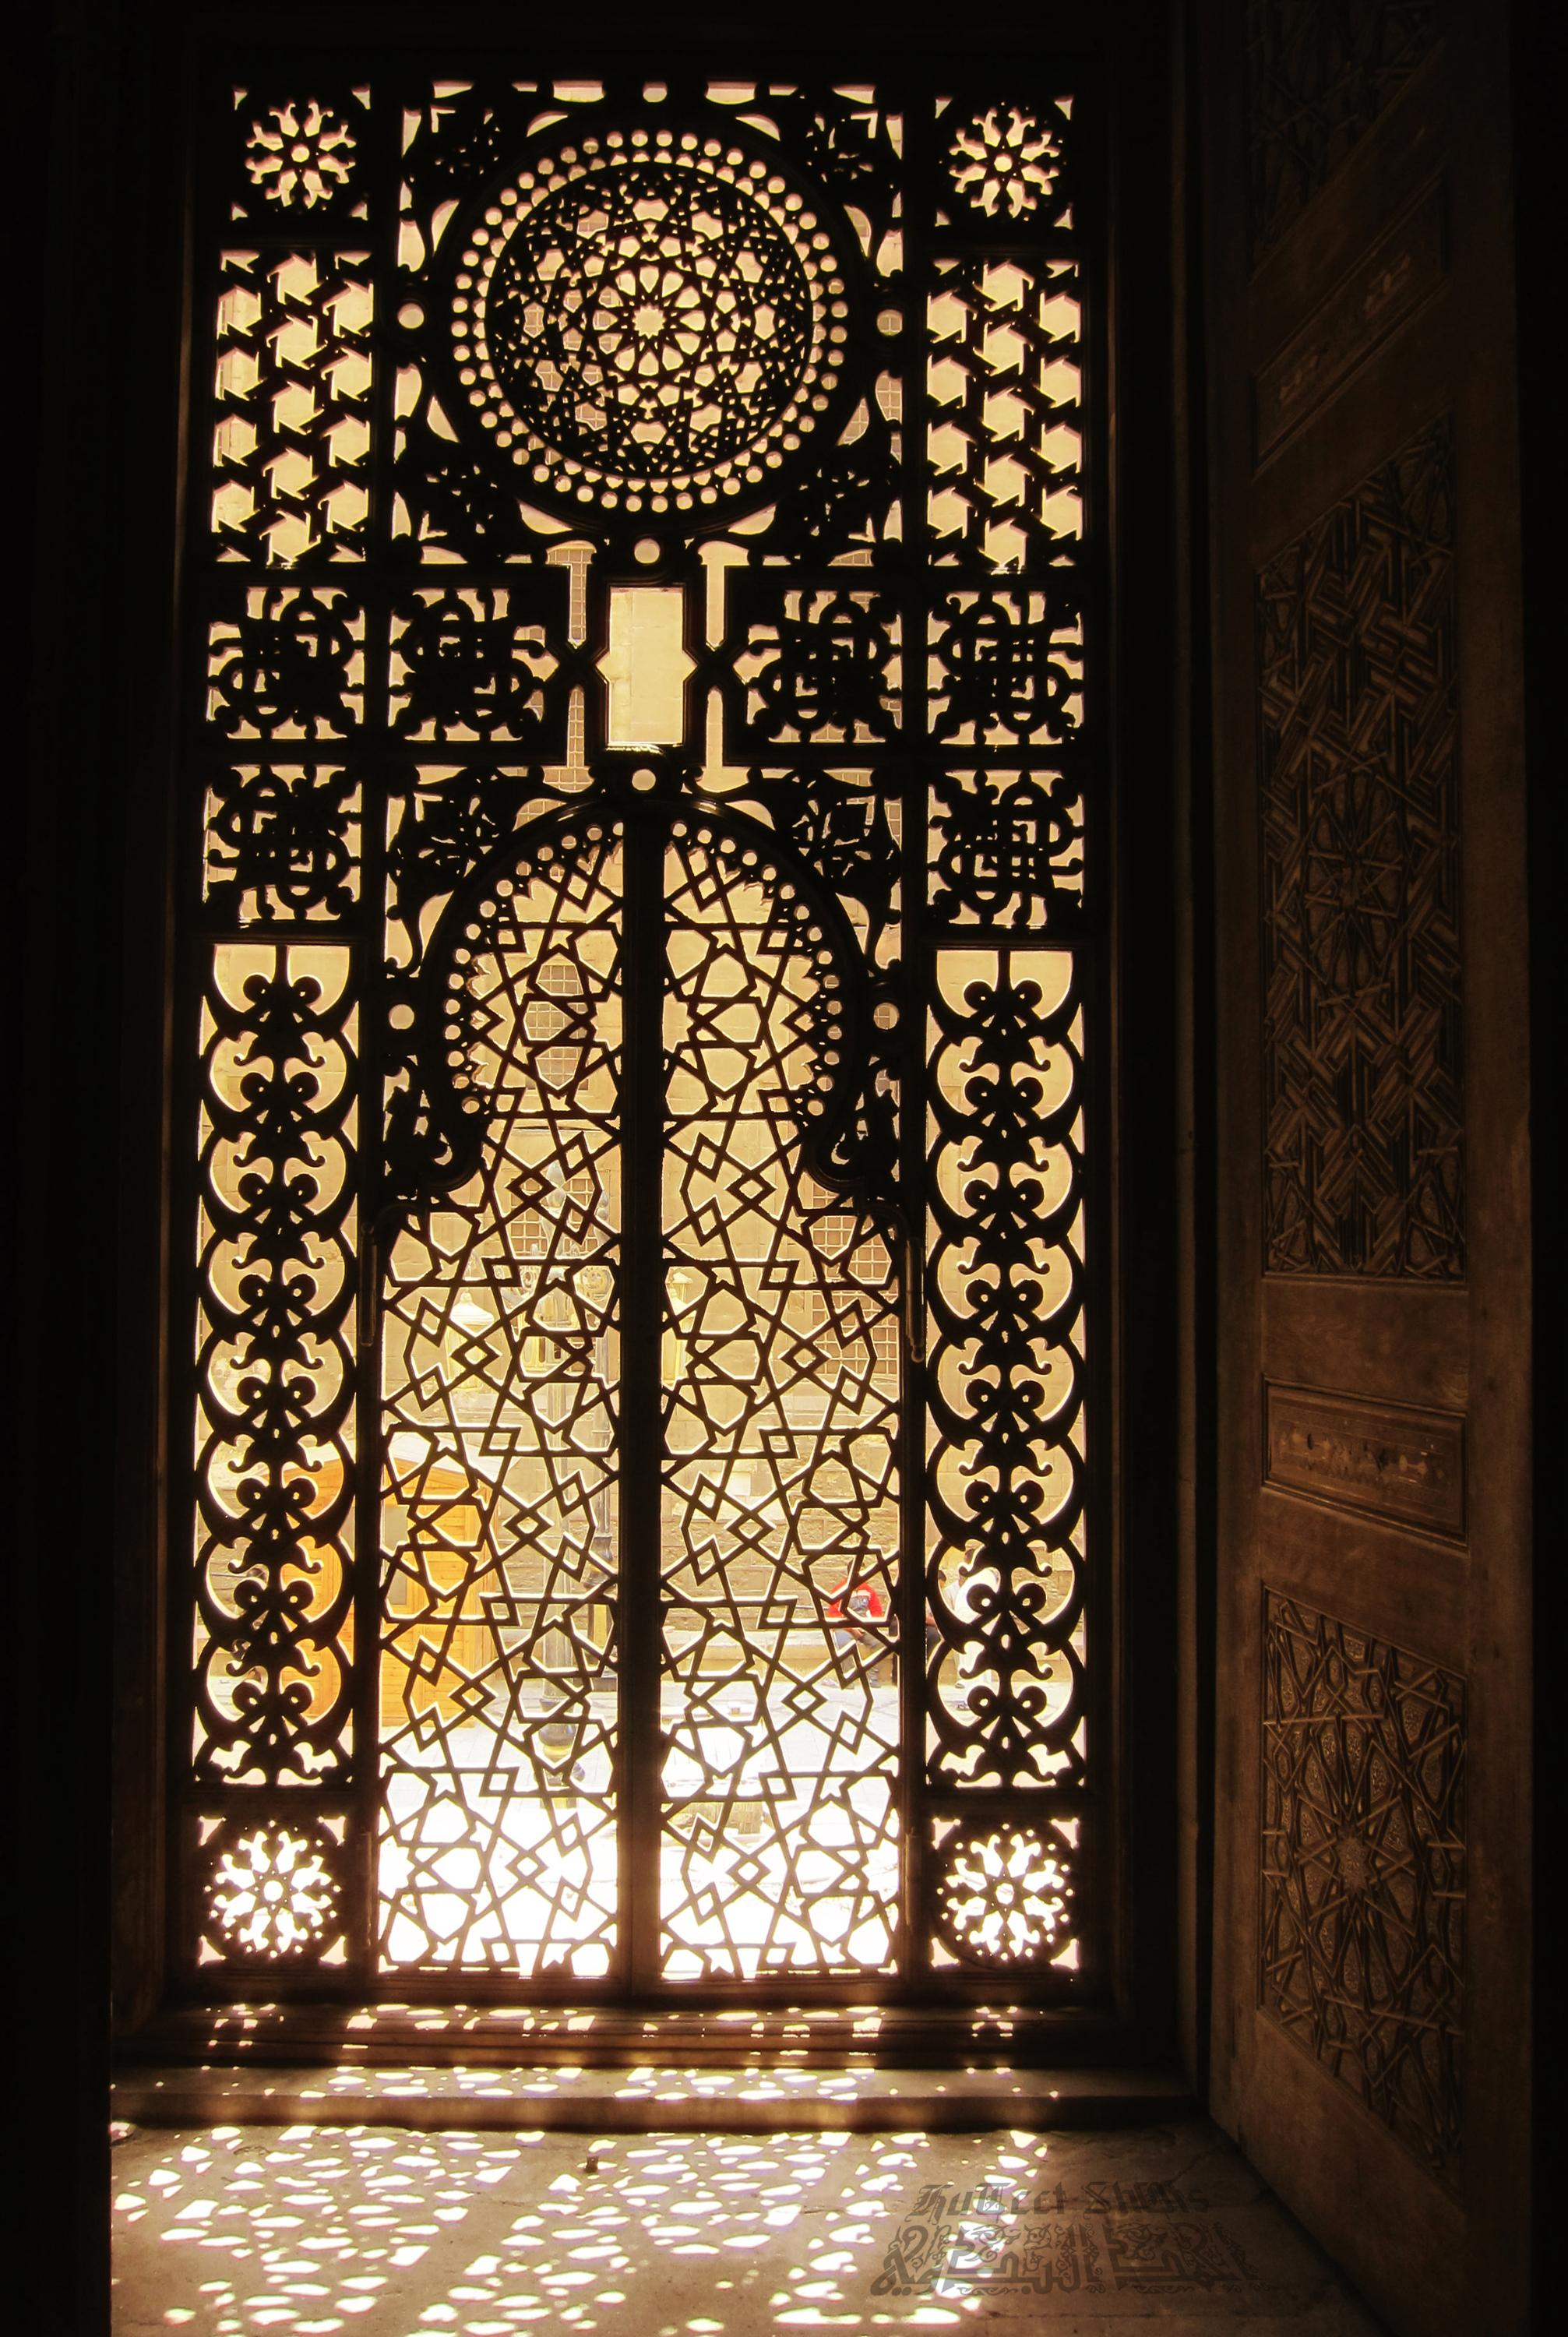 File:Flickr - HuTect ShOts - The window PATTERN - Masjid ...